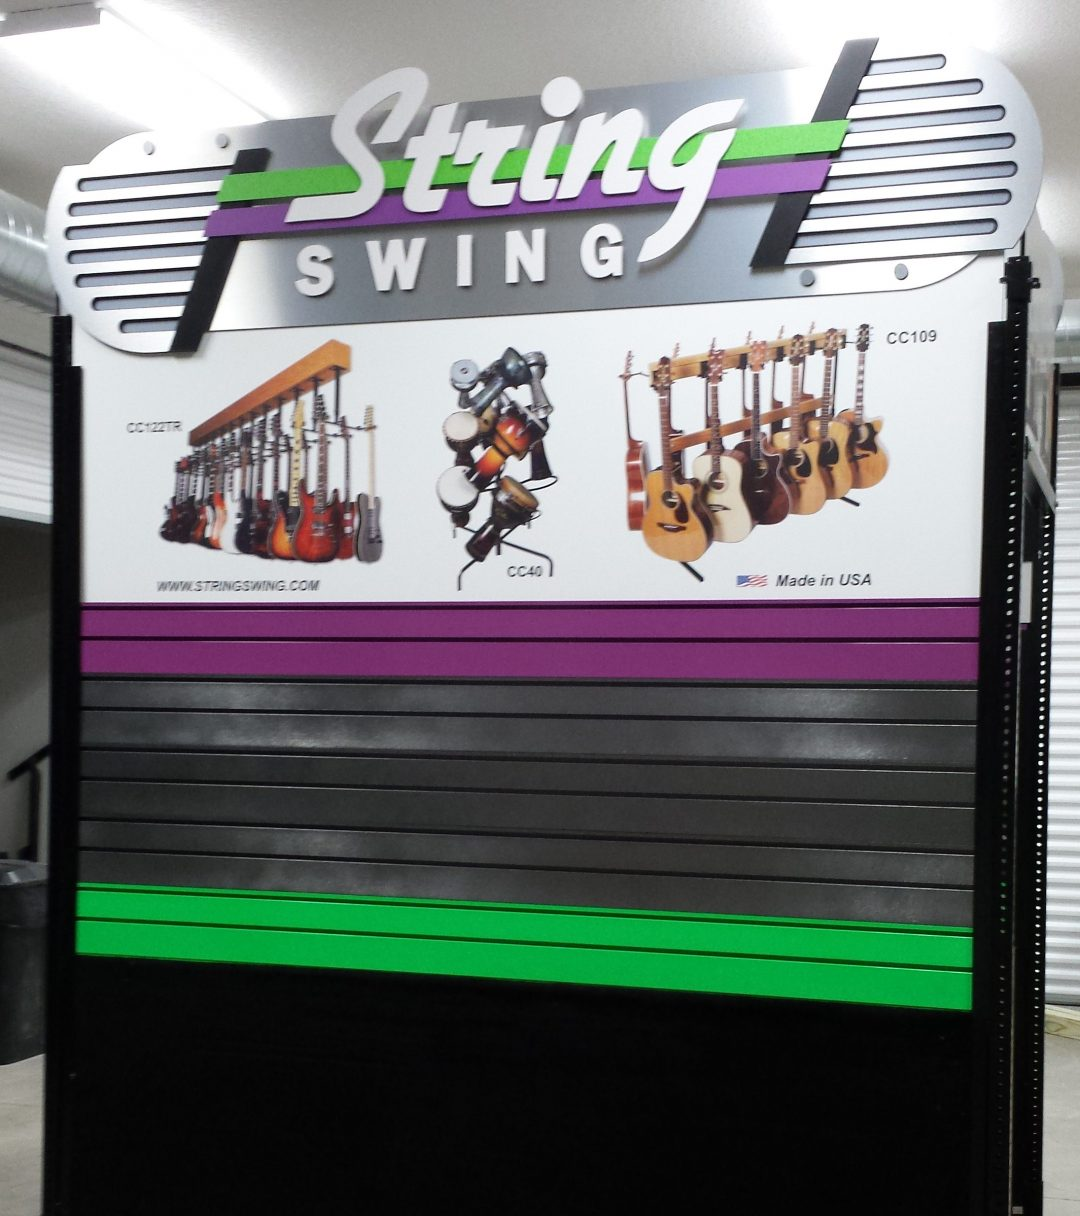 Trade Show Booth Design - String Swing